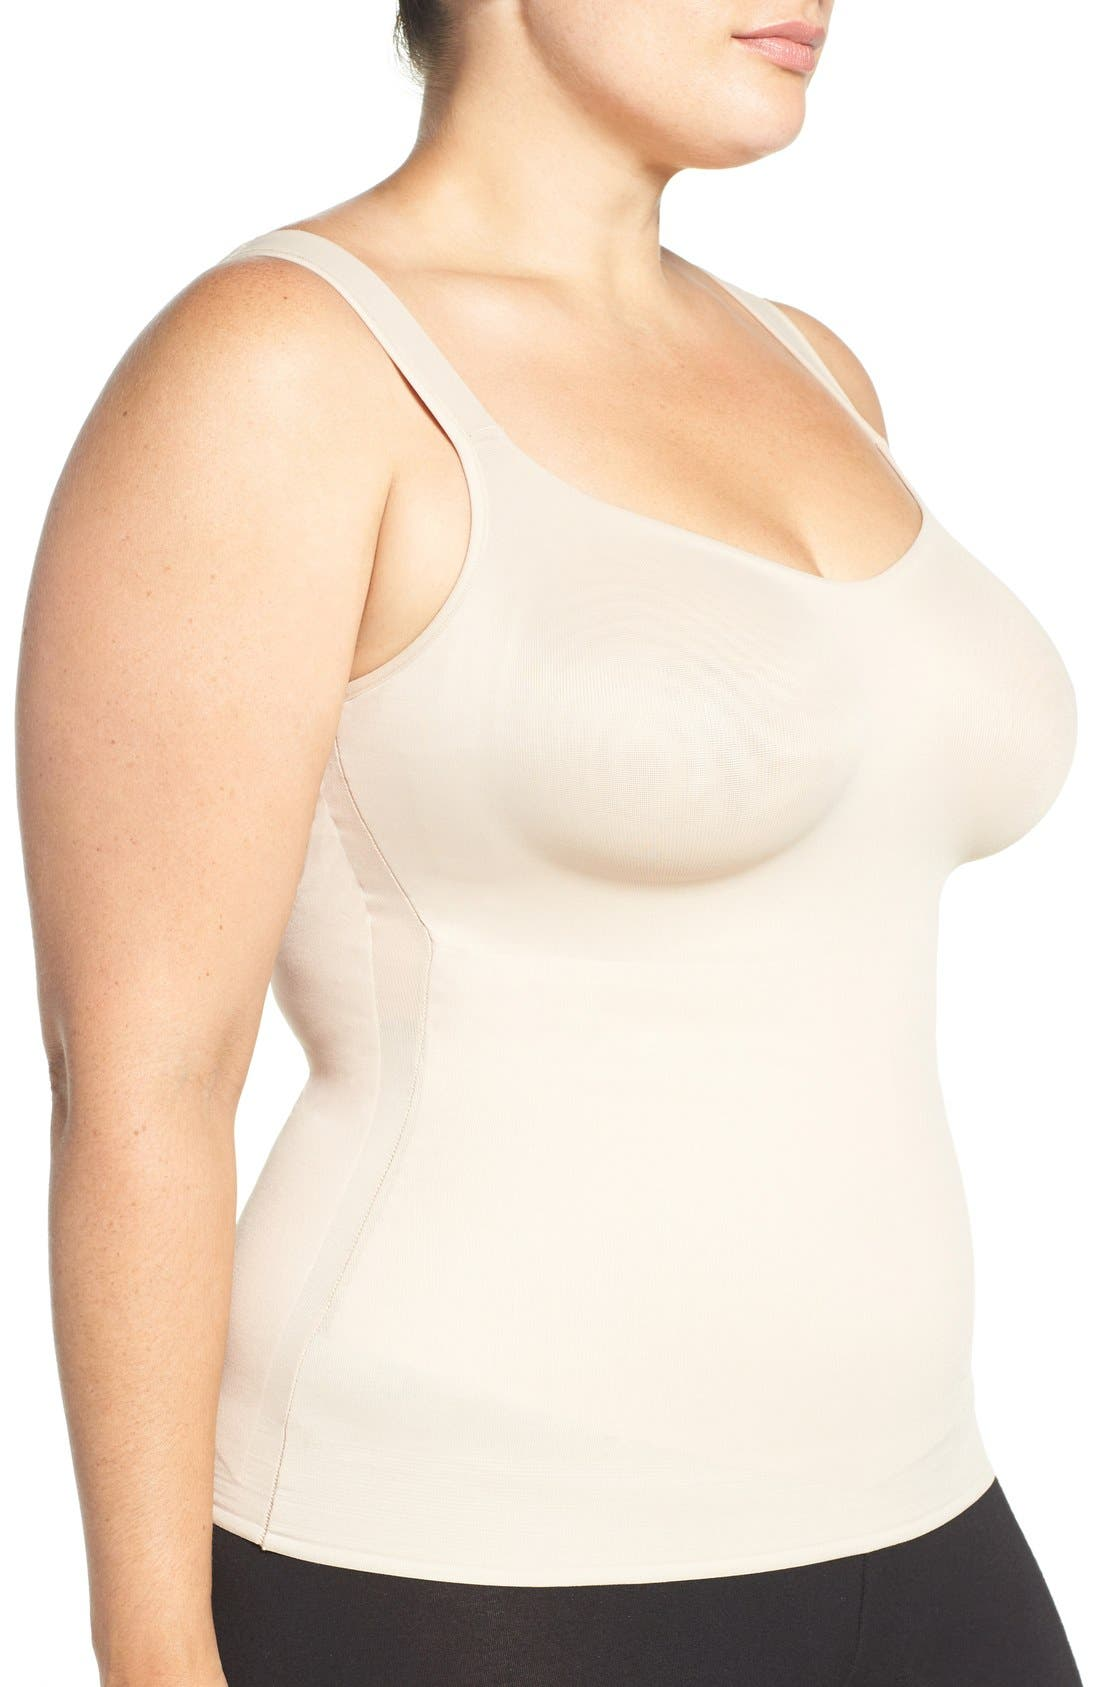 Camisole Shaper,                             Alternate thumbnail 3, color,                             Cupid Nude